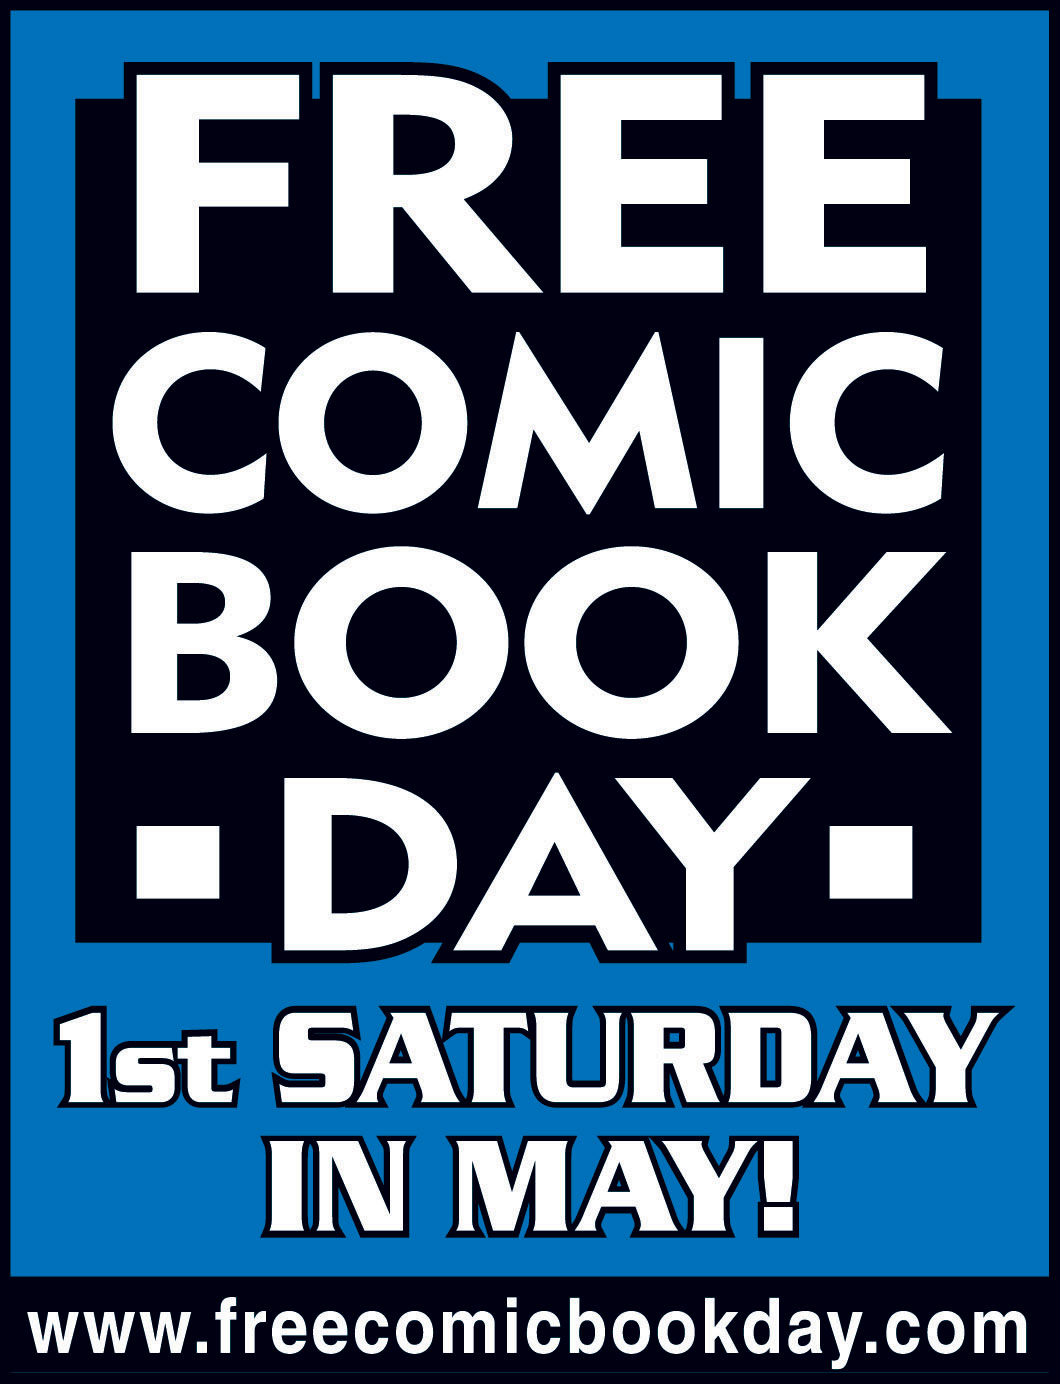 Free Comic-Book Day - 1st Saturday in May!